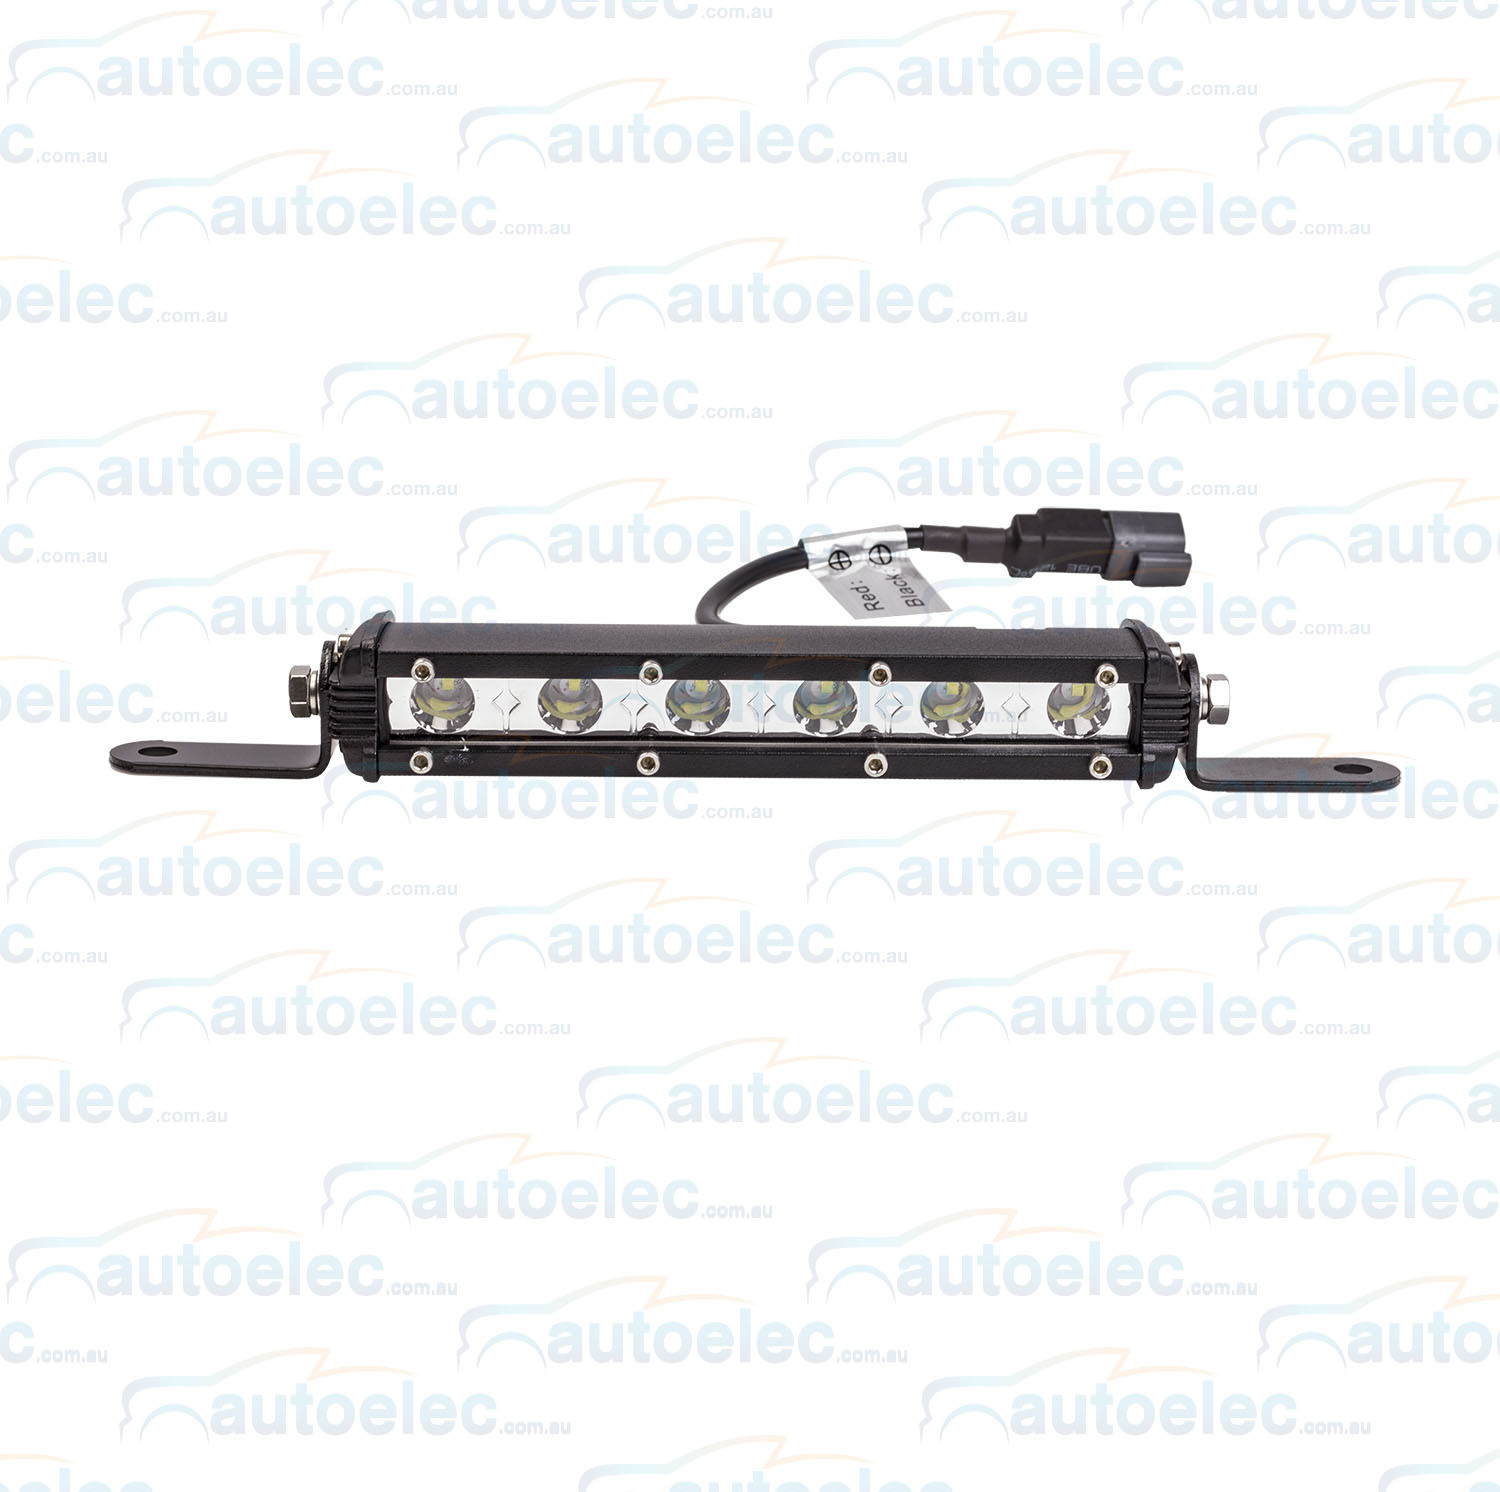 Ap Led Ultra Slim 179mm 7 Light Bar Work Lamp Spot Flood